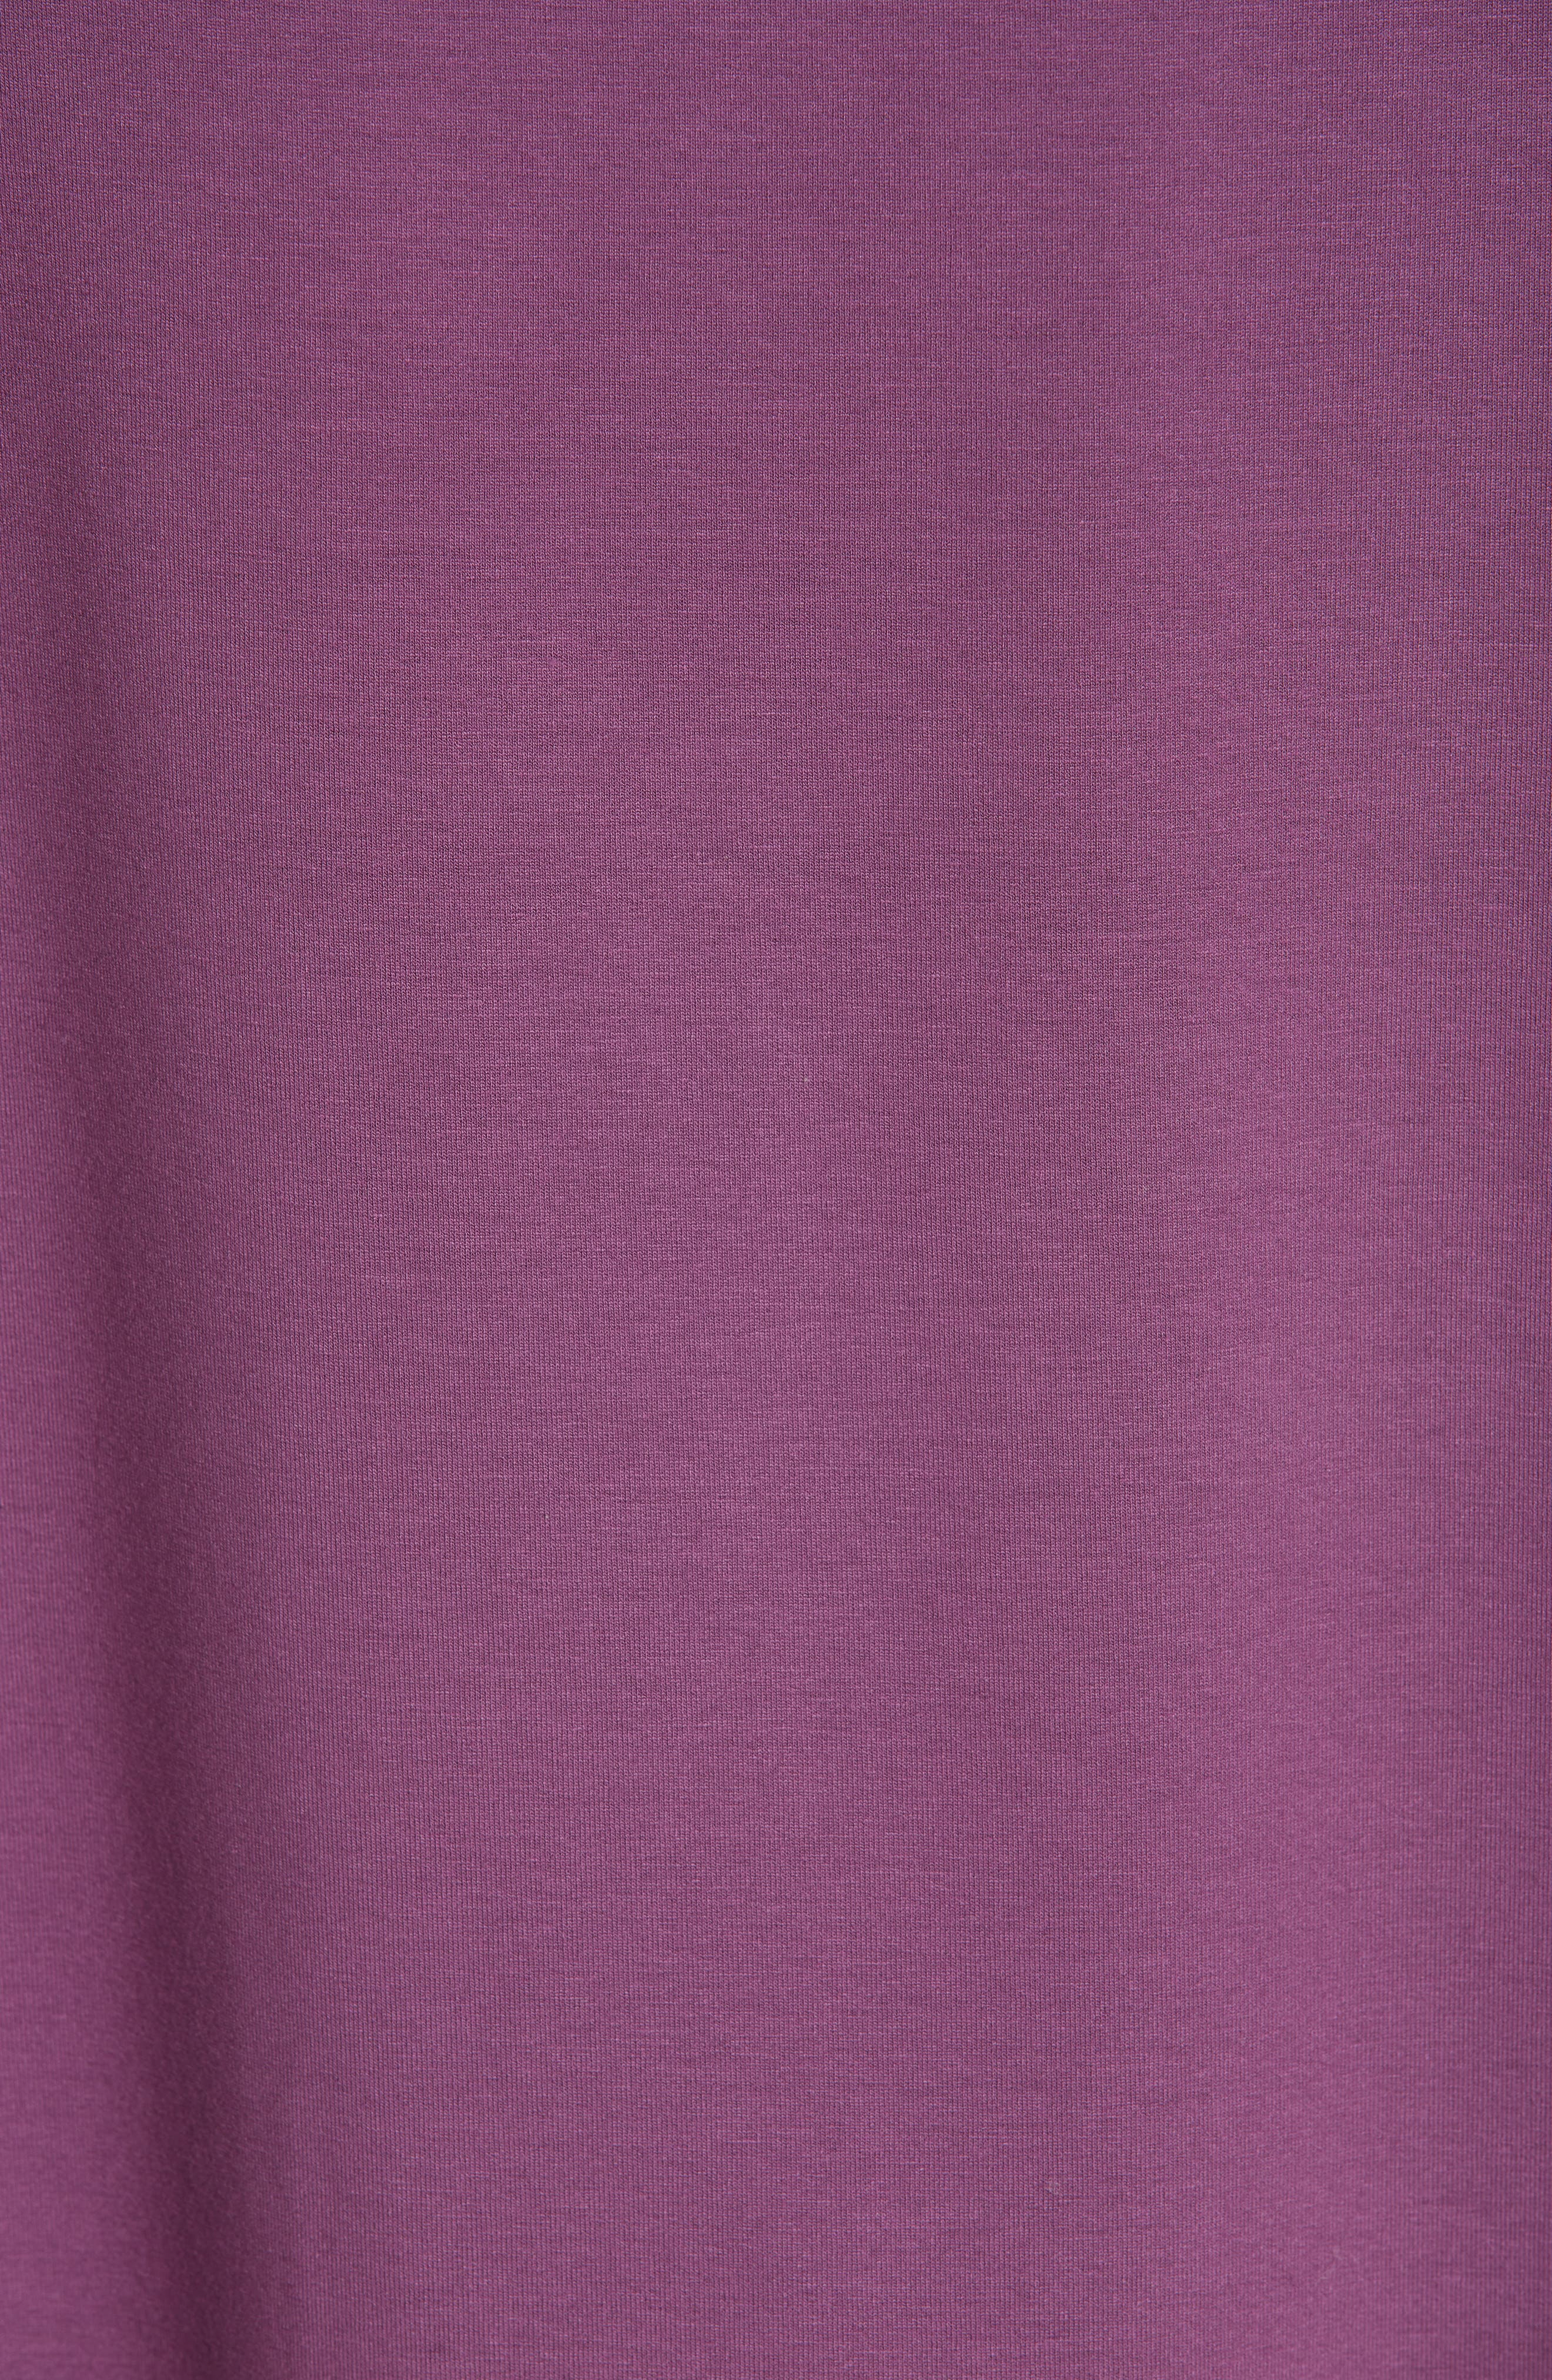 Flare Sleeve Top,                             Alternate thumbnail 5, color,                             CURRANT